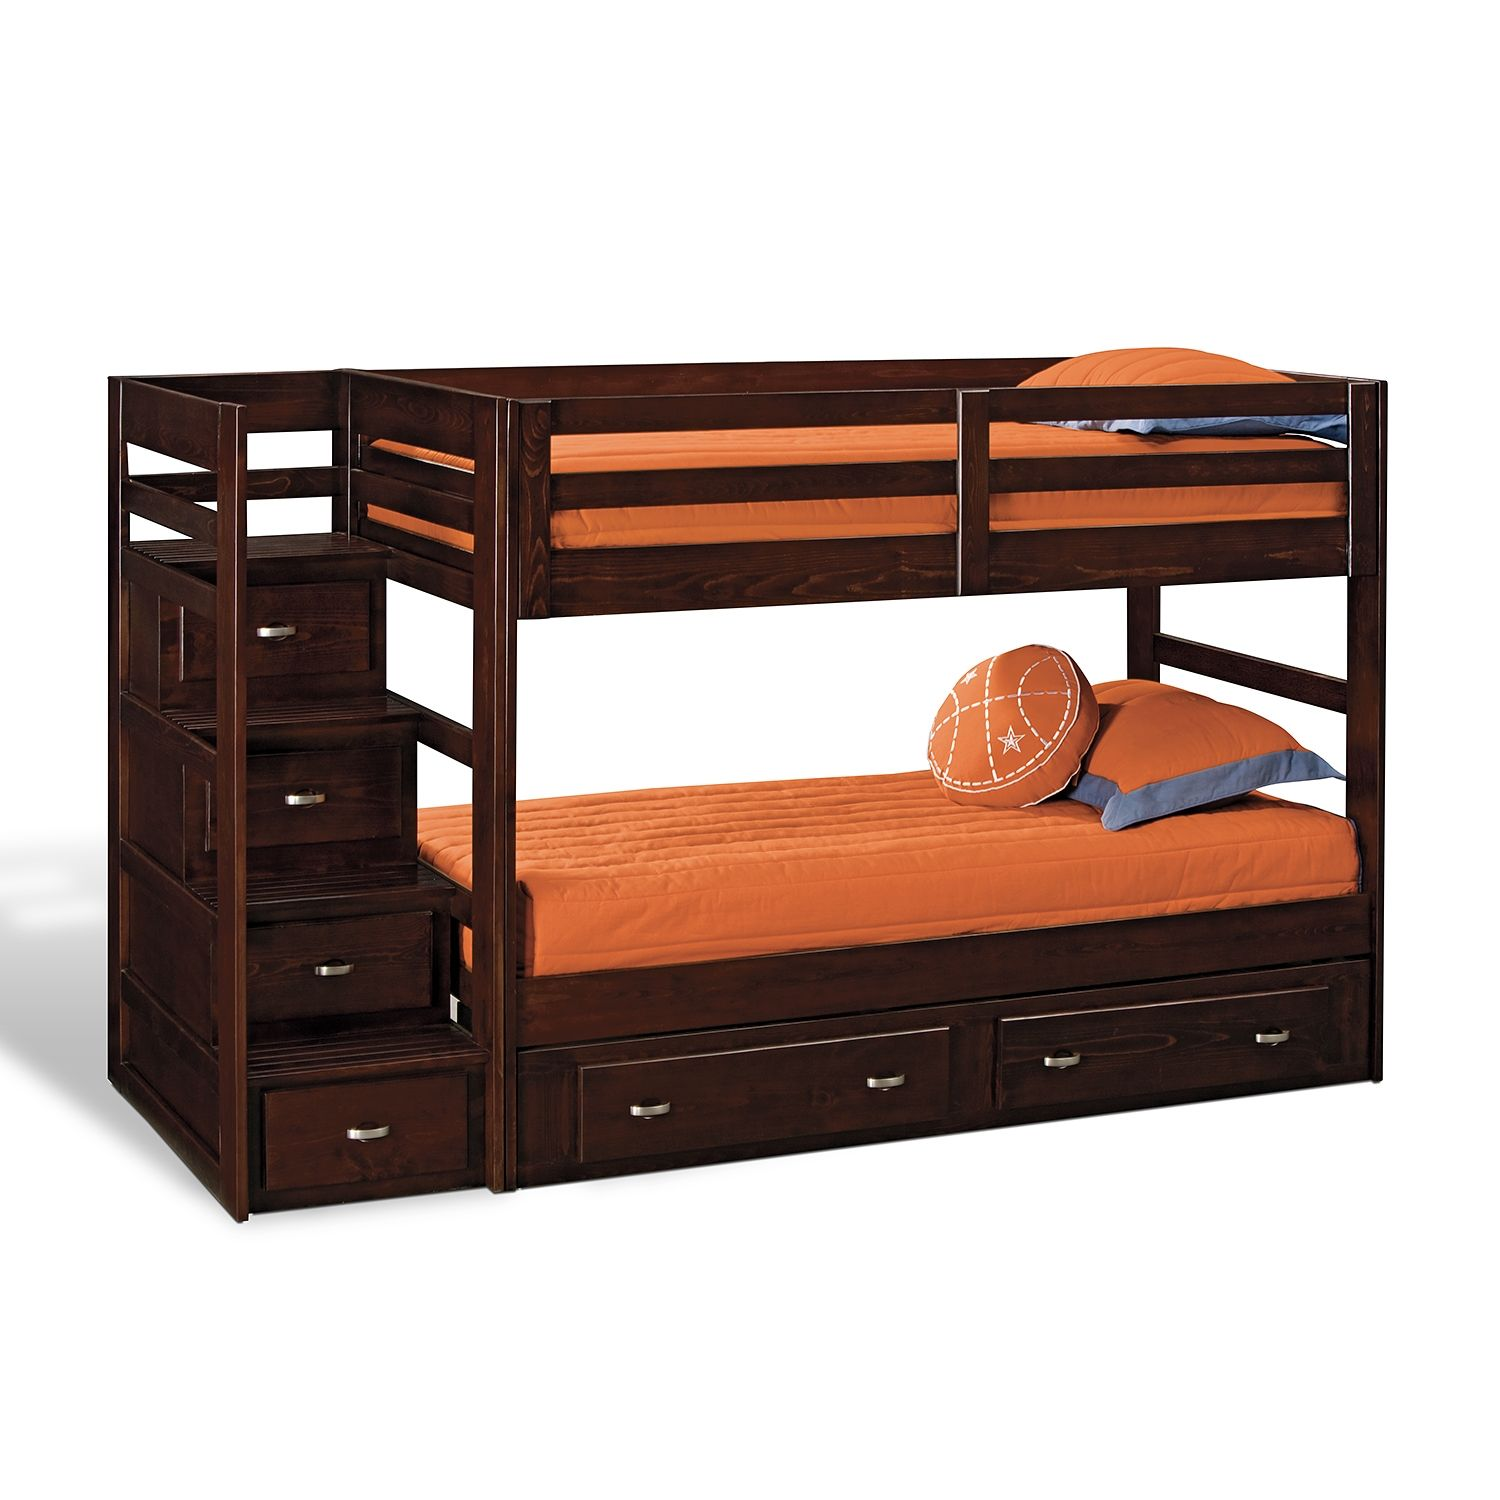 Loft bed with desk jordan's furniture  Twin Bunk Bed with Stairs and Storage Designer  Beds  Pinterest